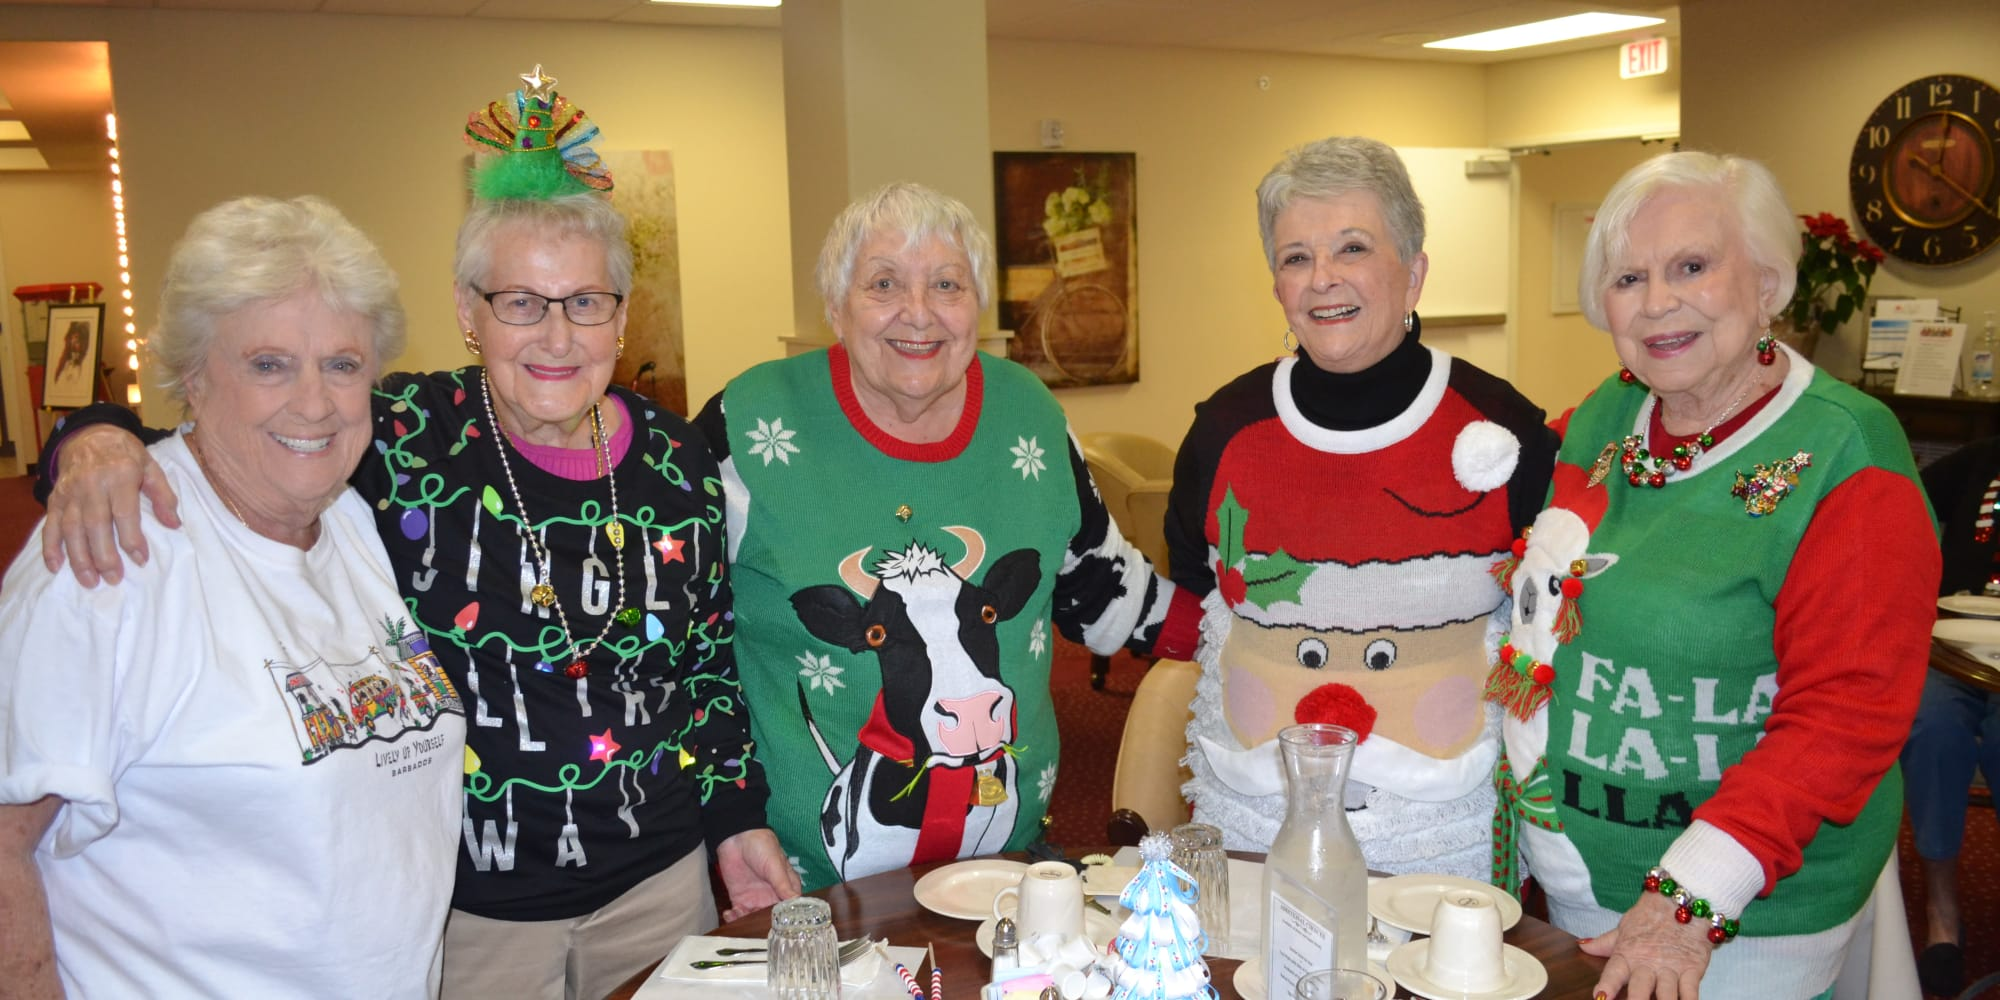 Residents in festive holiday sweaters at Mulberry Gardens Assisted Living in Munroe Falls, Ohio